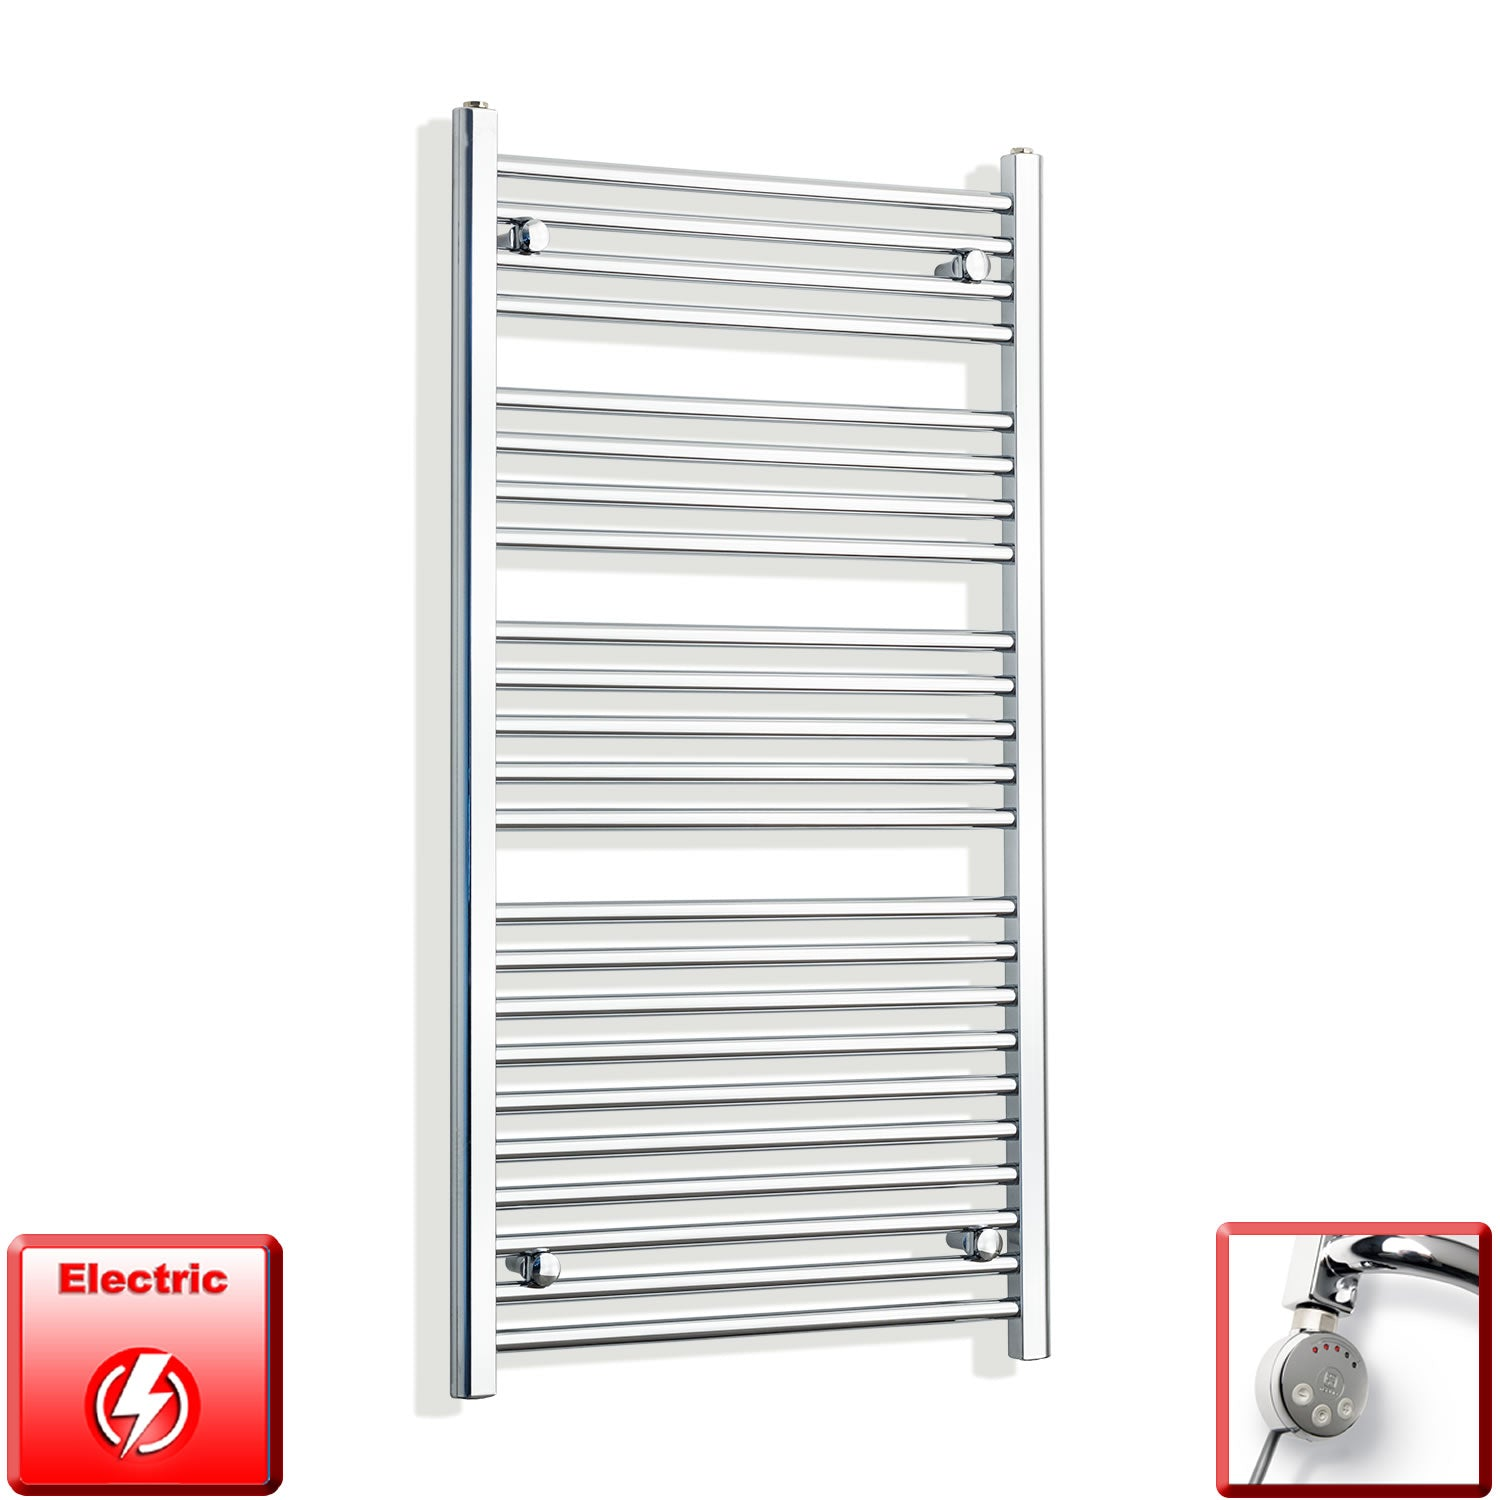 700mm Wide 1200mm High Pre-Filled Chrome Electric Towel Rail Radiator With Thermostatic MEG Element